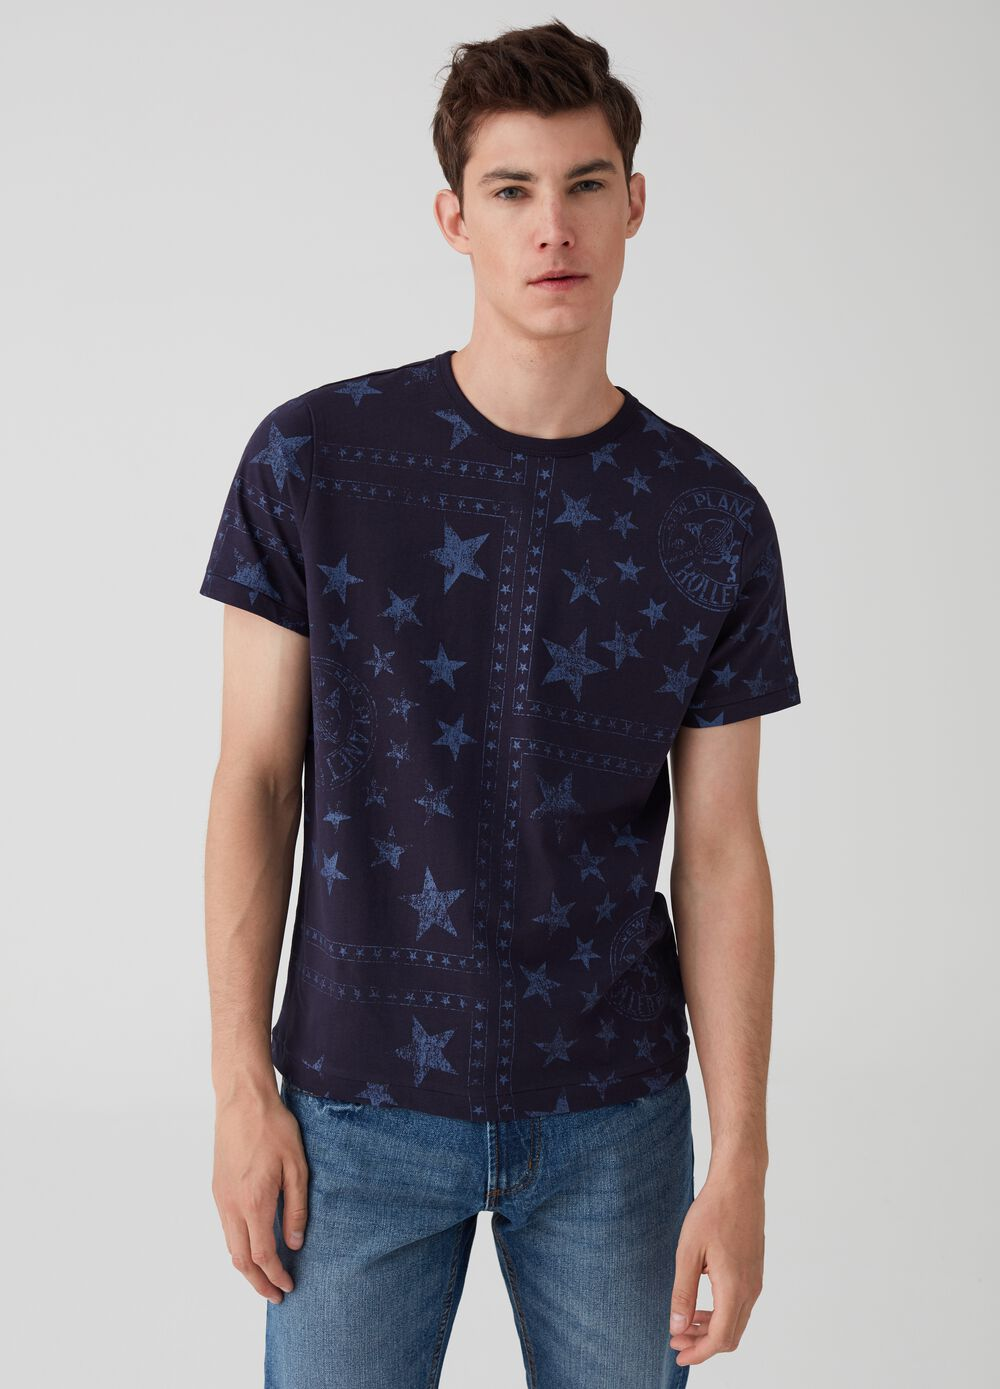 100% cotton T-shirt with stars and lettering pattern